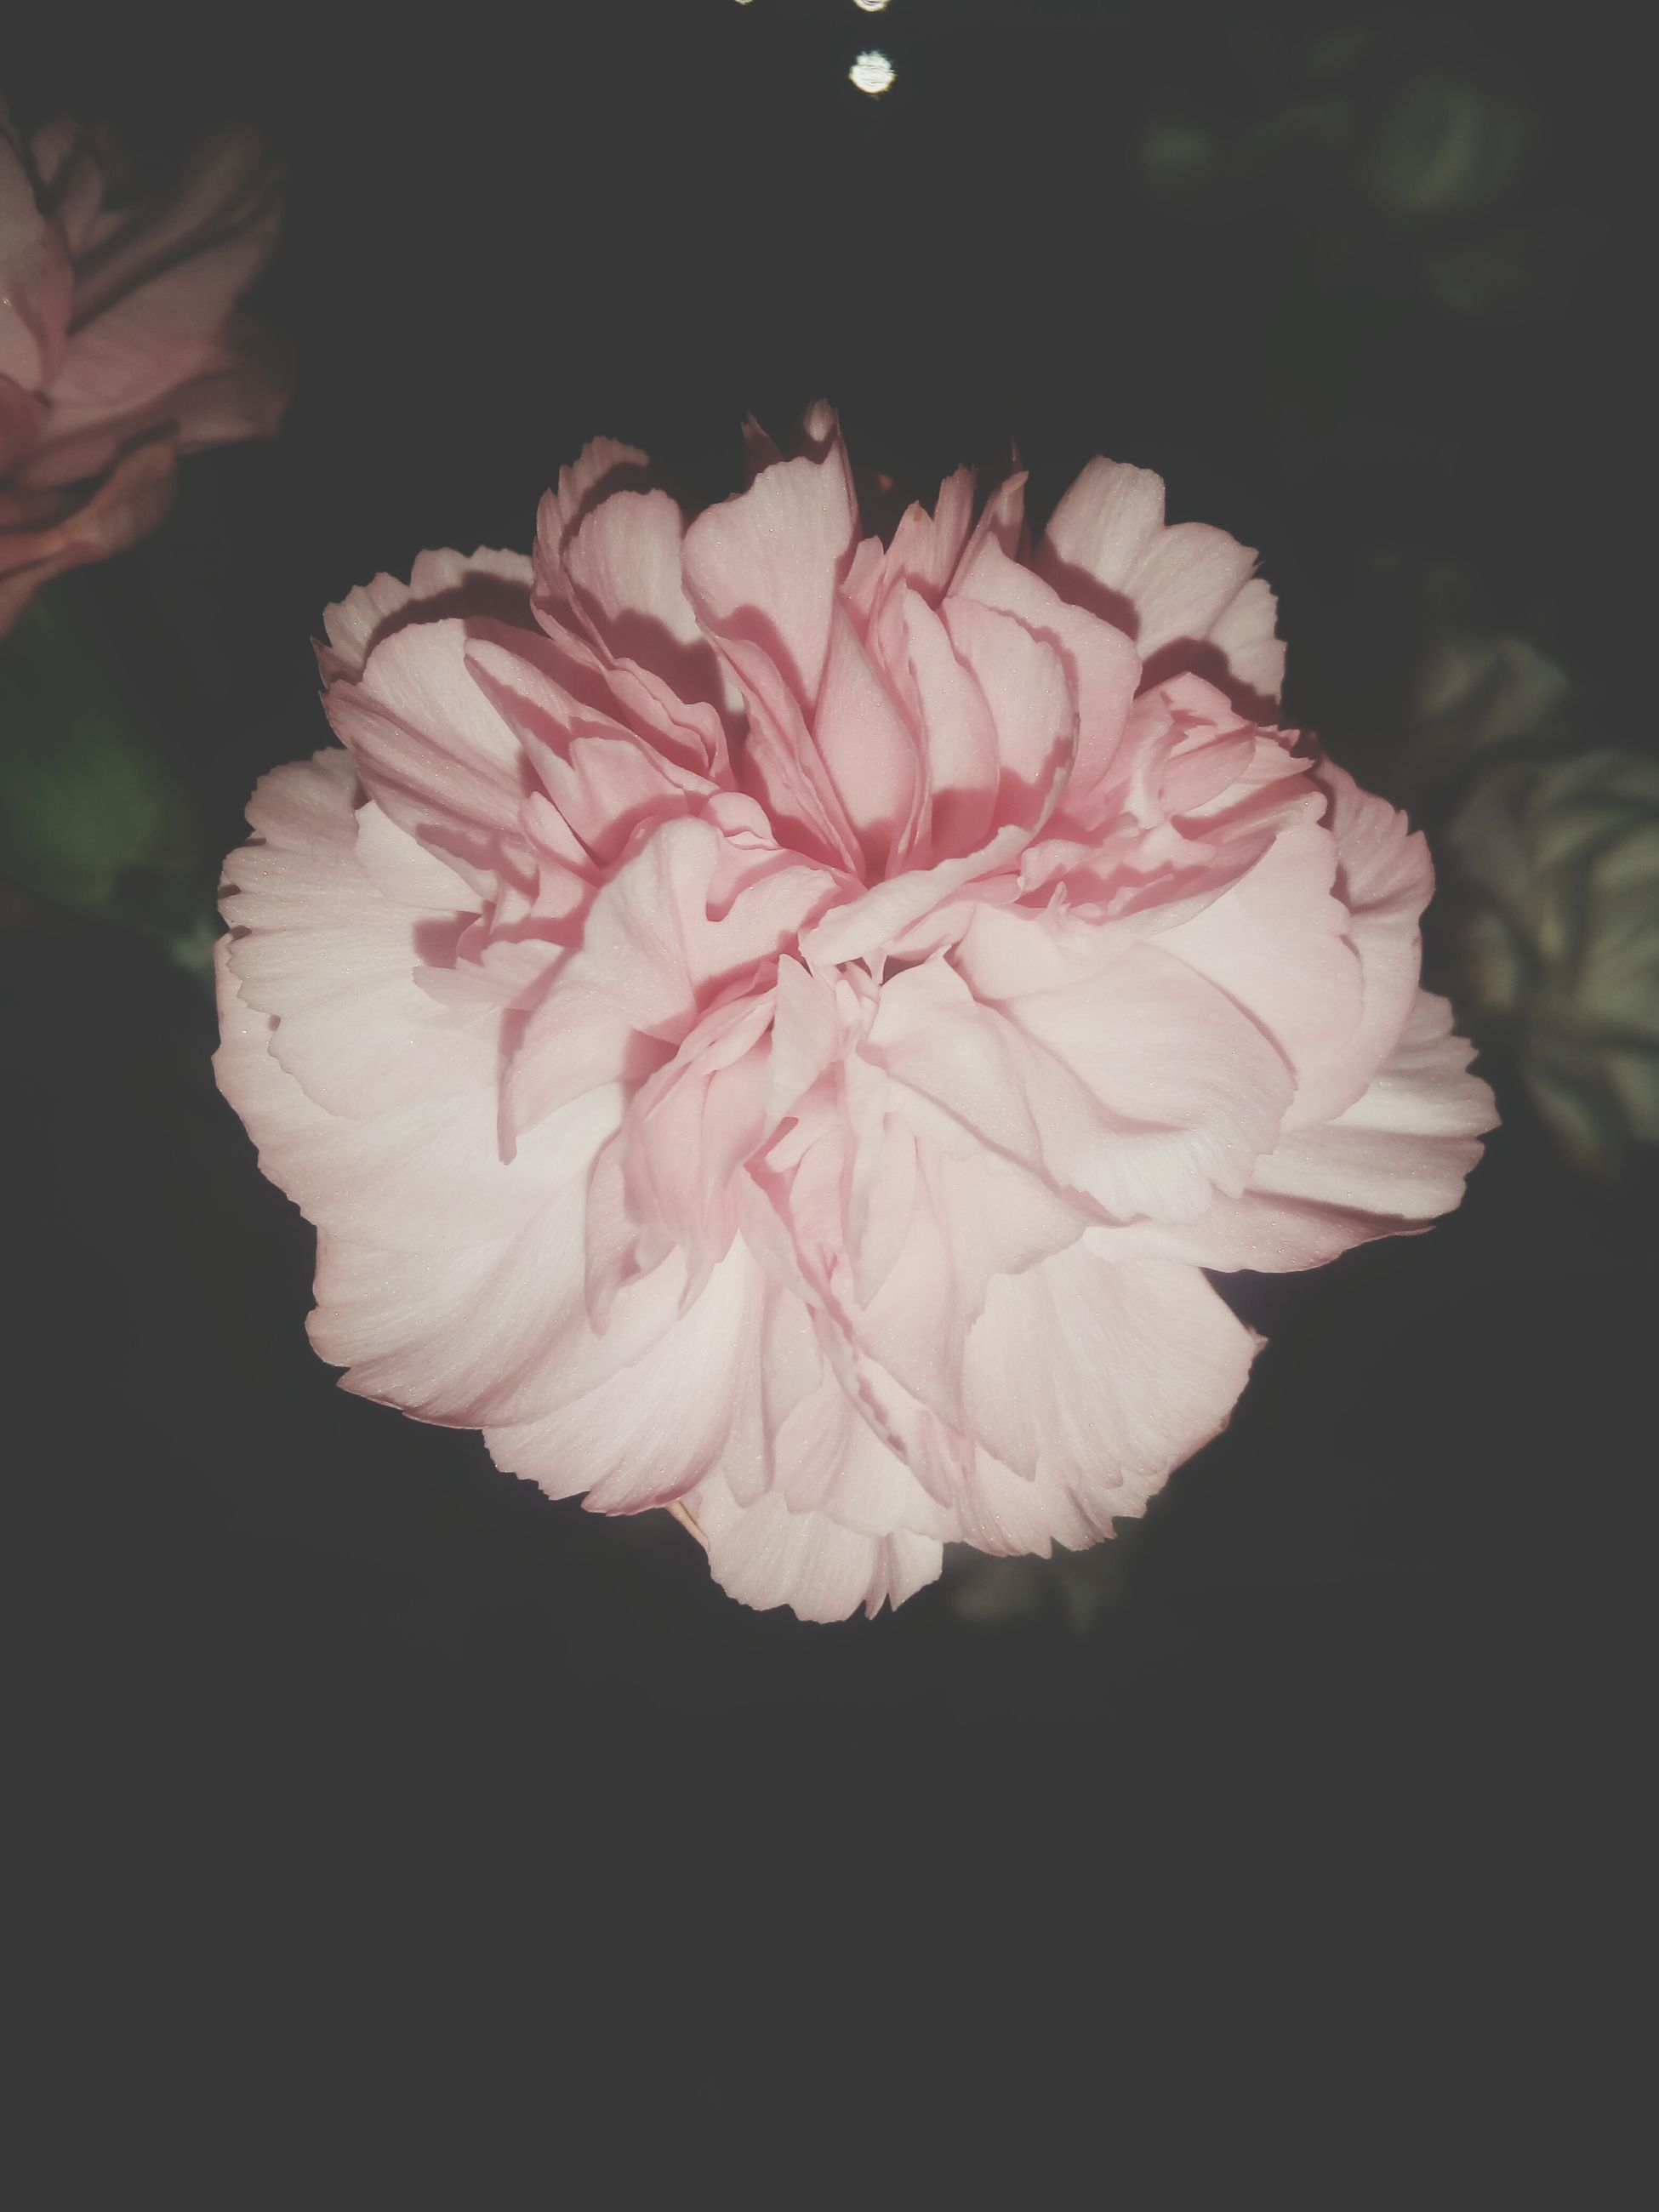 flower, petal, flower head, fragility, freshness, beauty in nature, close-up, single flower, growth, black background, nature, blooming, studio shot, pink color, night, rose - flower, in bloom, plant, no people, blossom